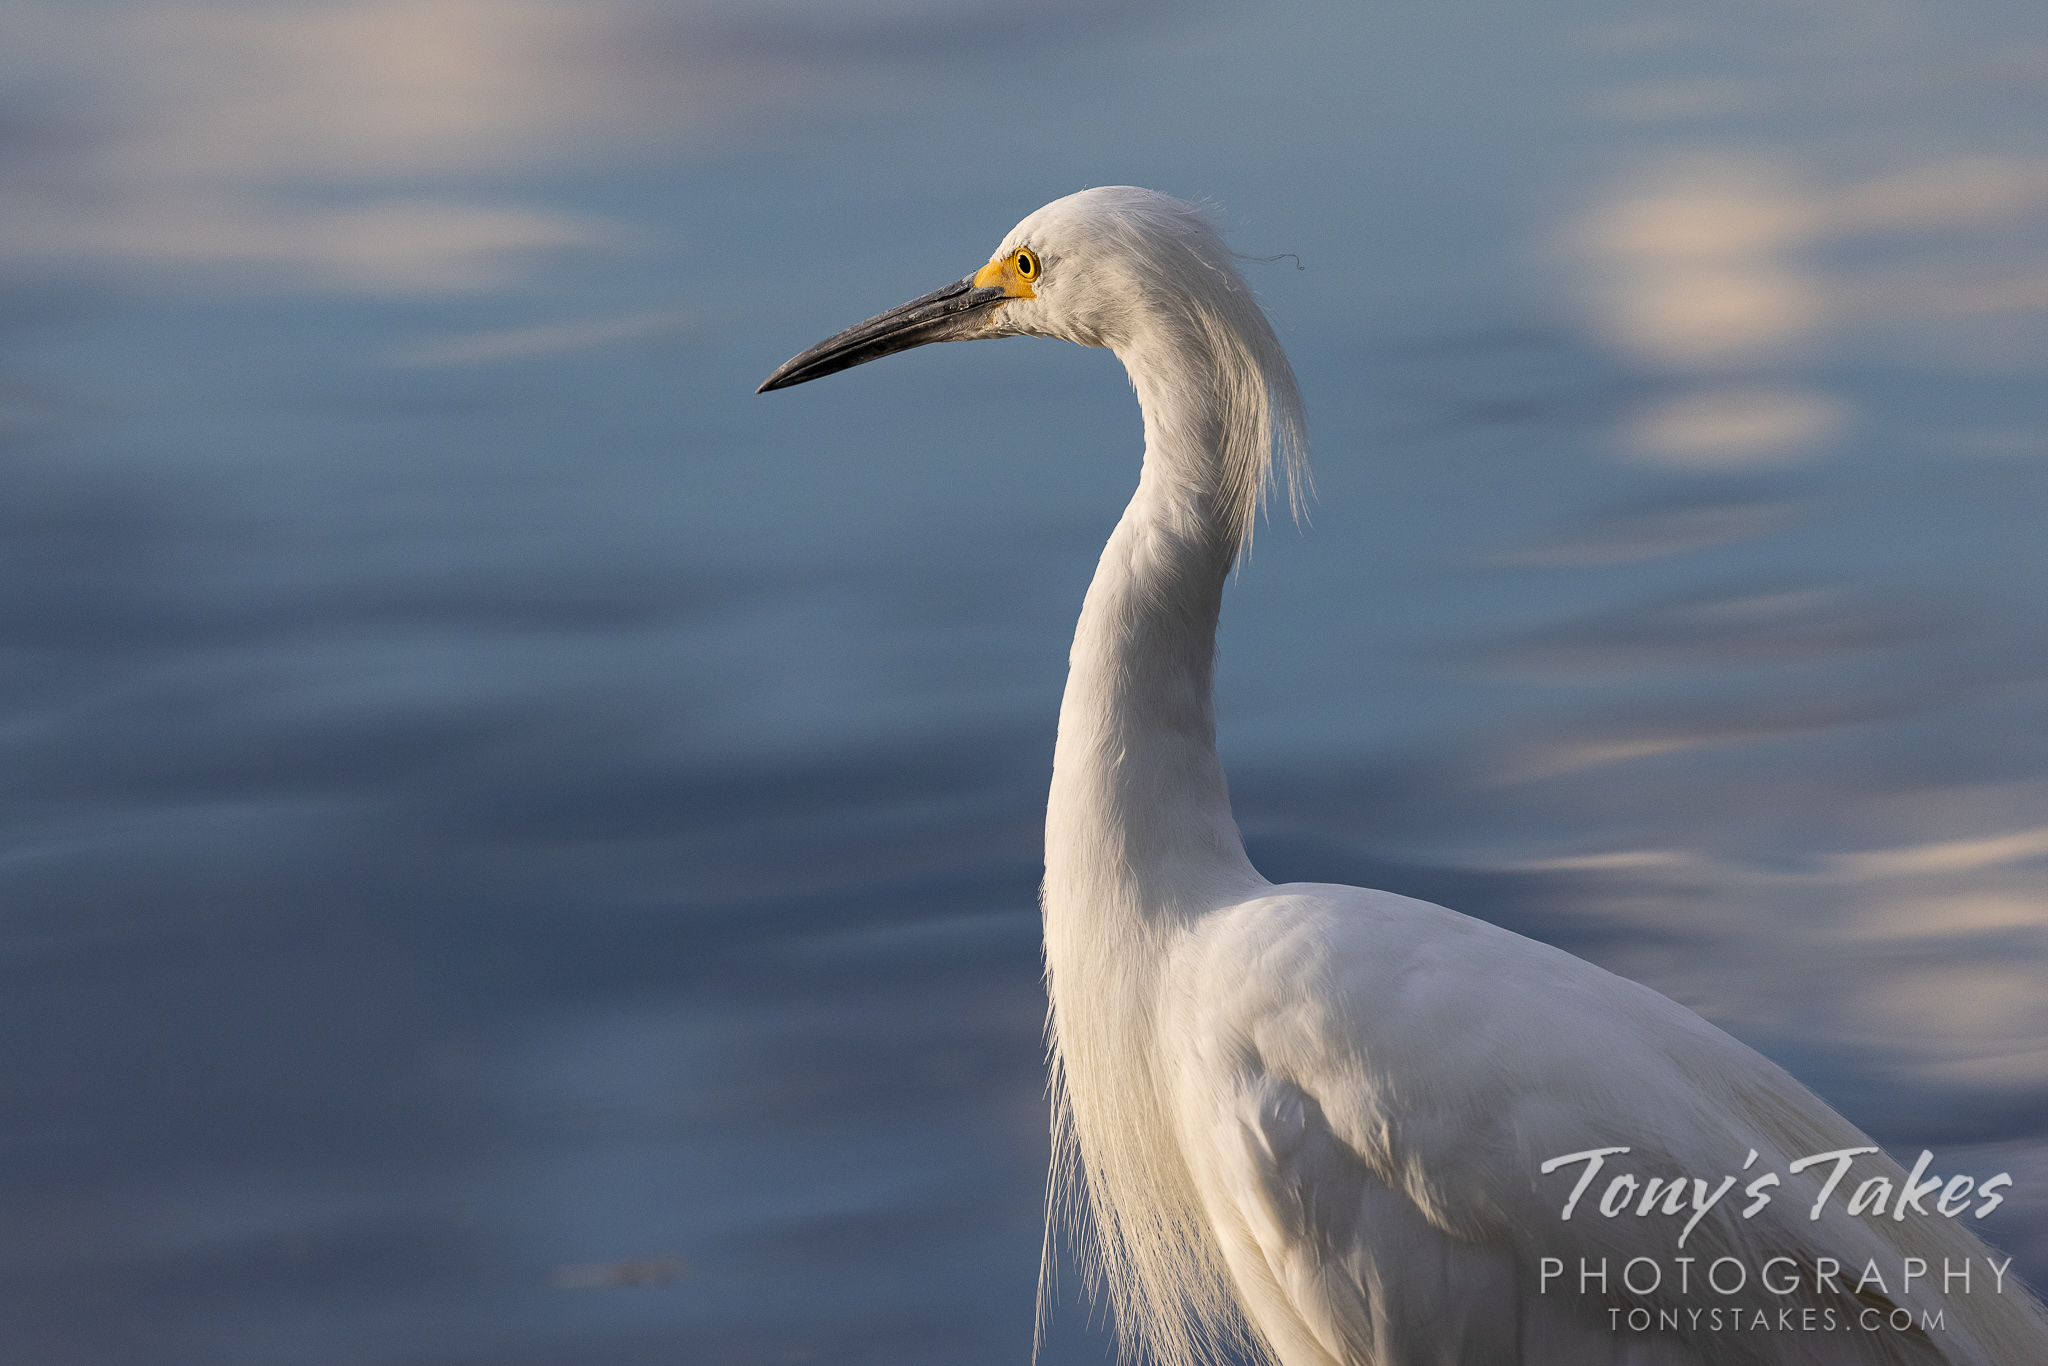 Snowy egret closeup. Canon R5, Canon EF 100-400mm f/4.5-5.6L IS II USM @ 400mm, 1/1600, f/8, ISO 640, -2/3 ev.